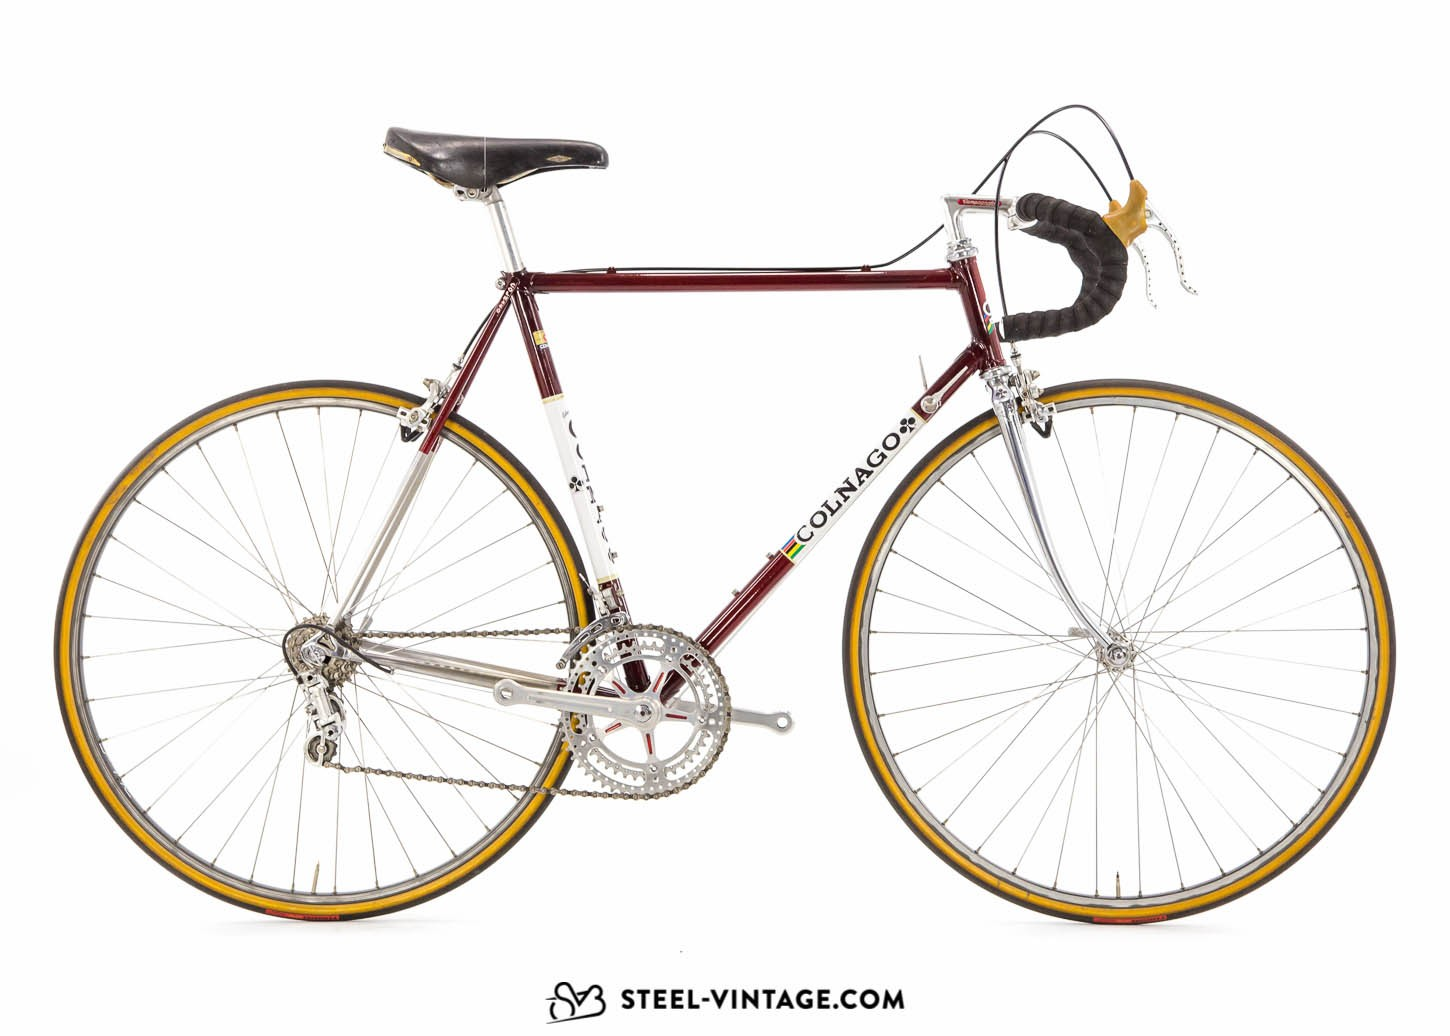 colnago-mexico-classic-steel-bicycle-1_3.JPG